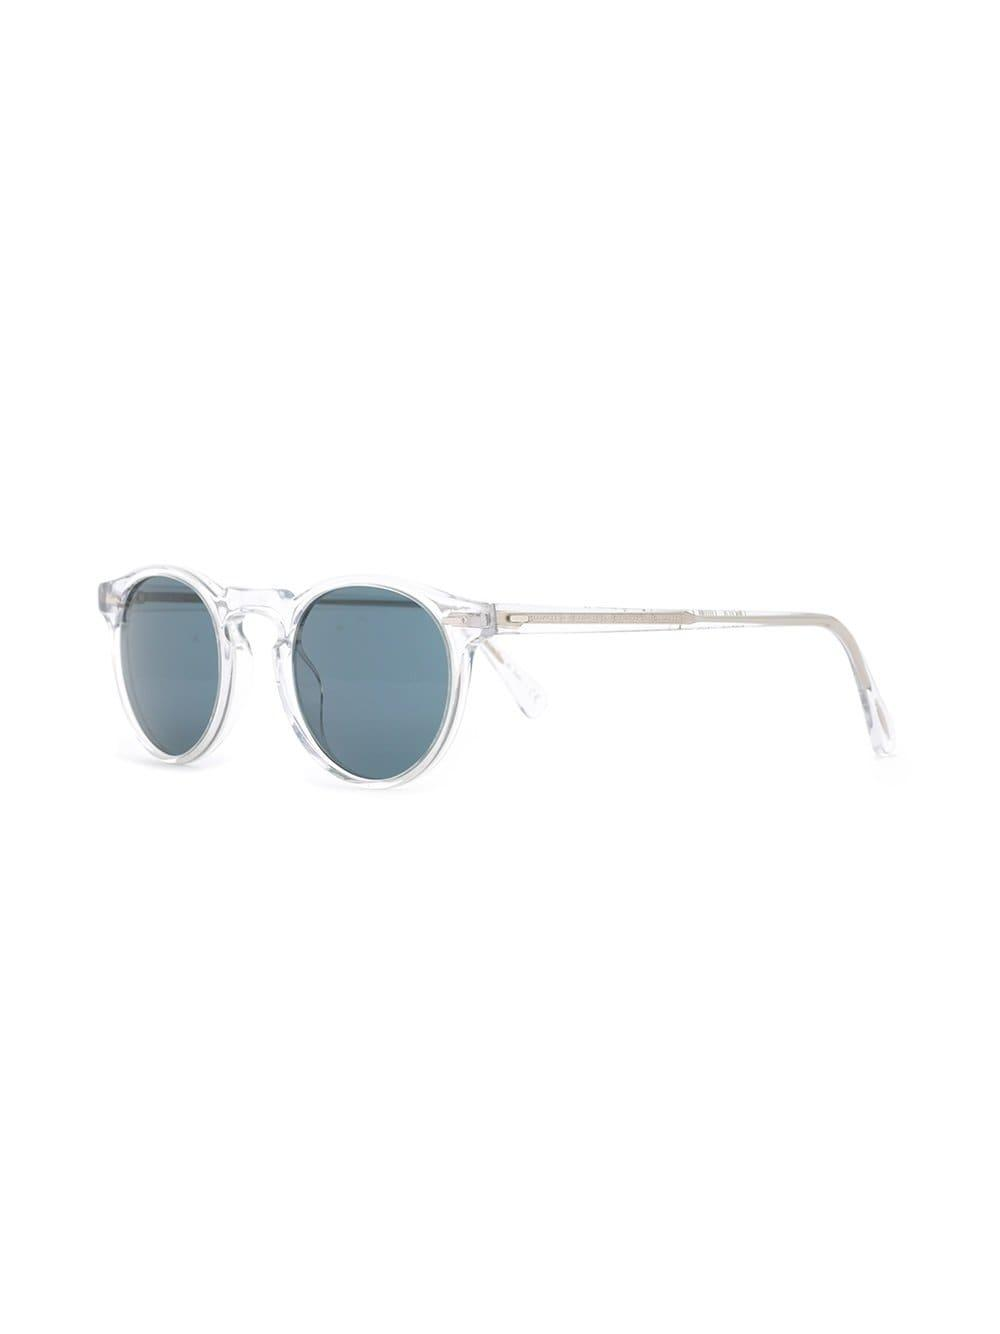 802221a349 Oliver Peoples - Multicolor Gregory Peck Sunglasses - Lyst. View fullscreen